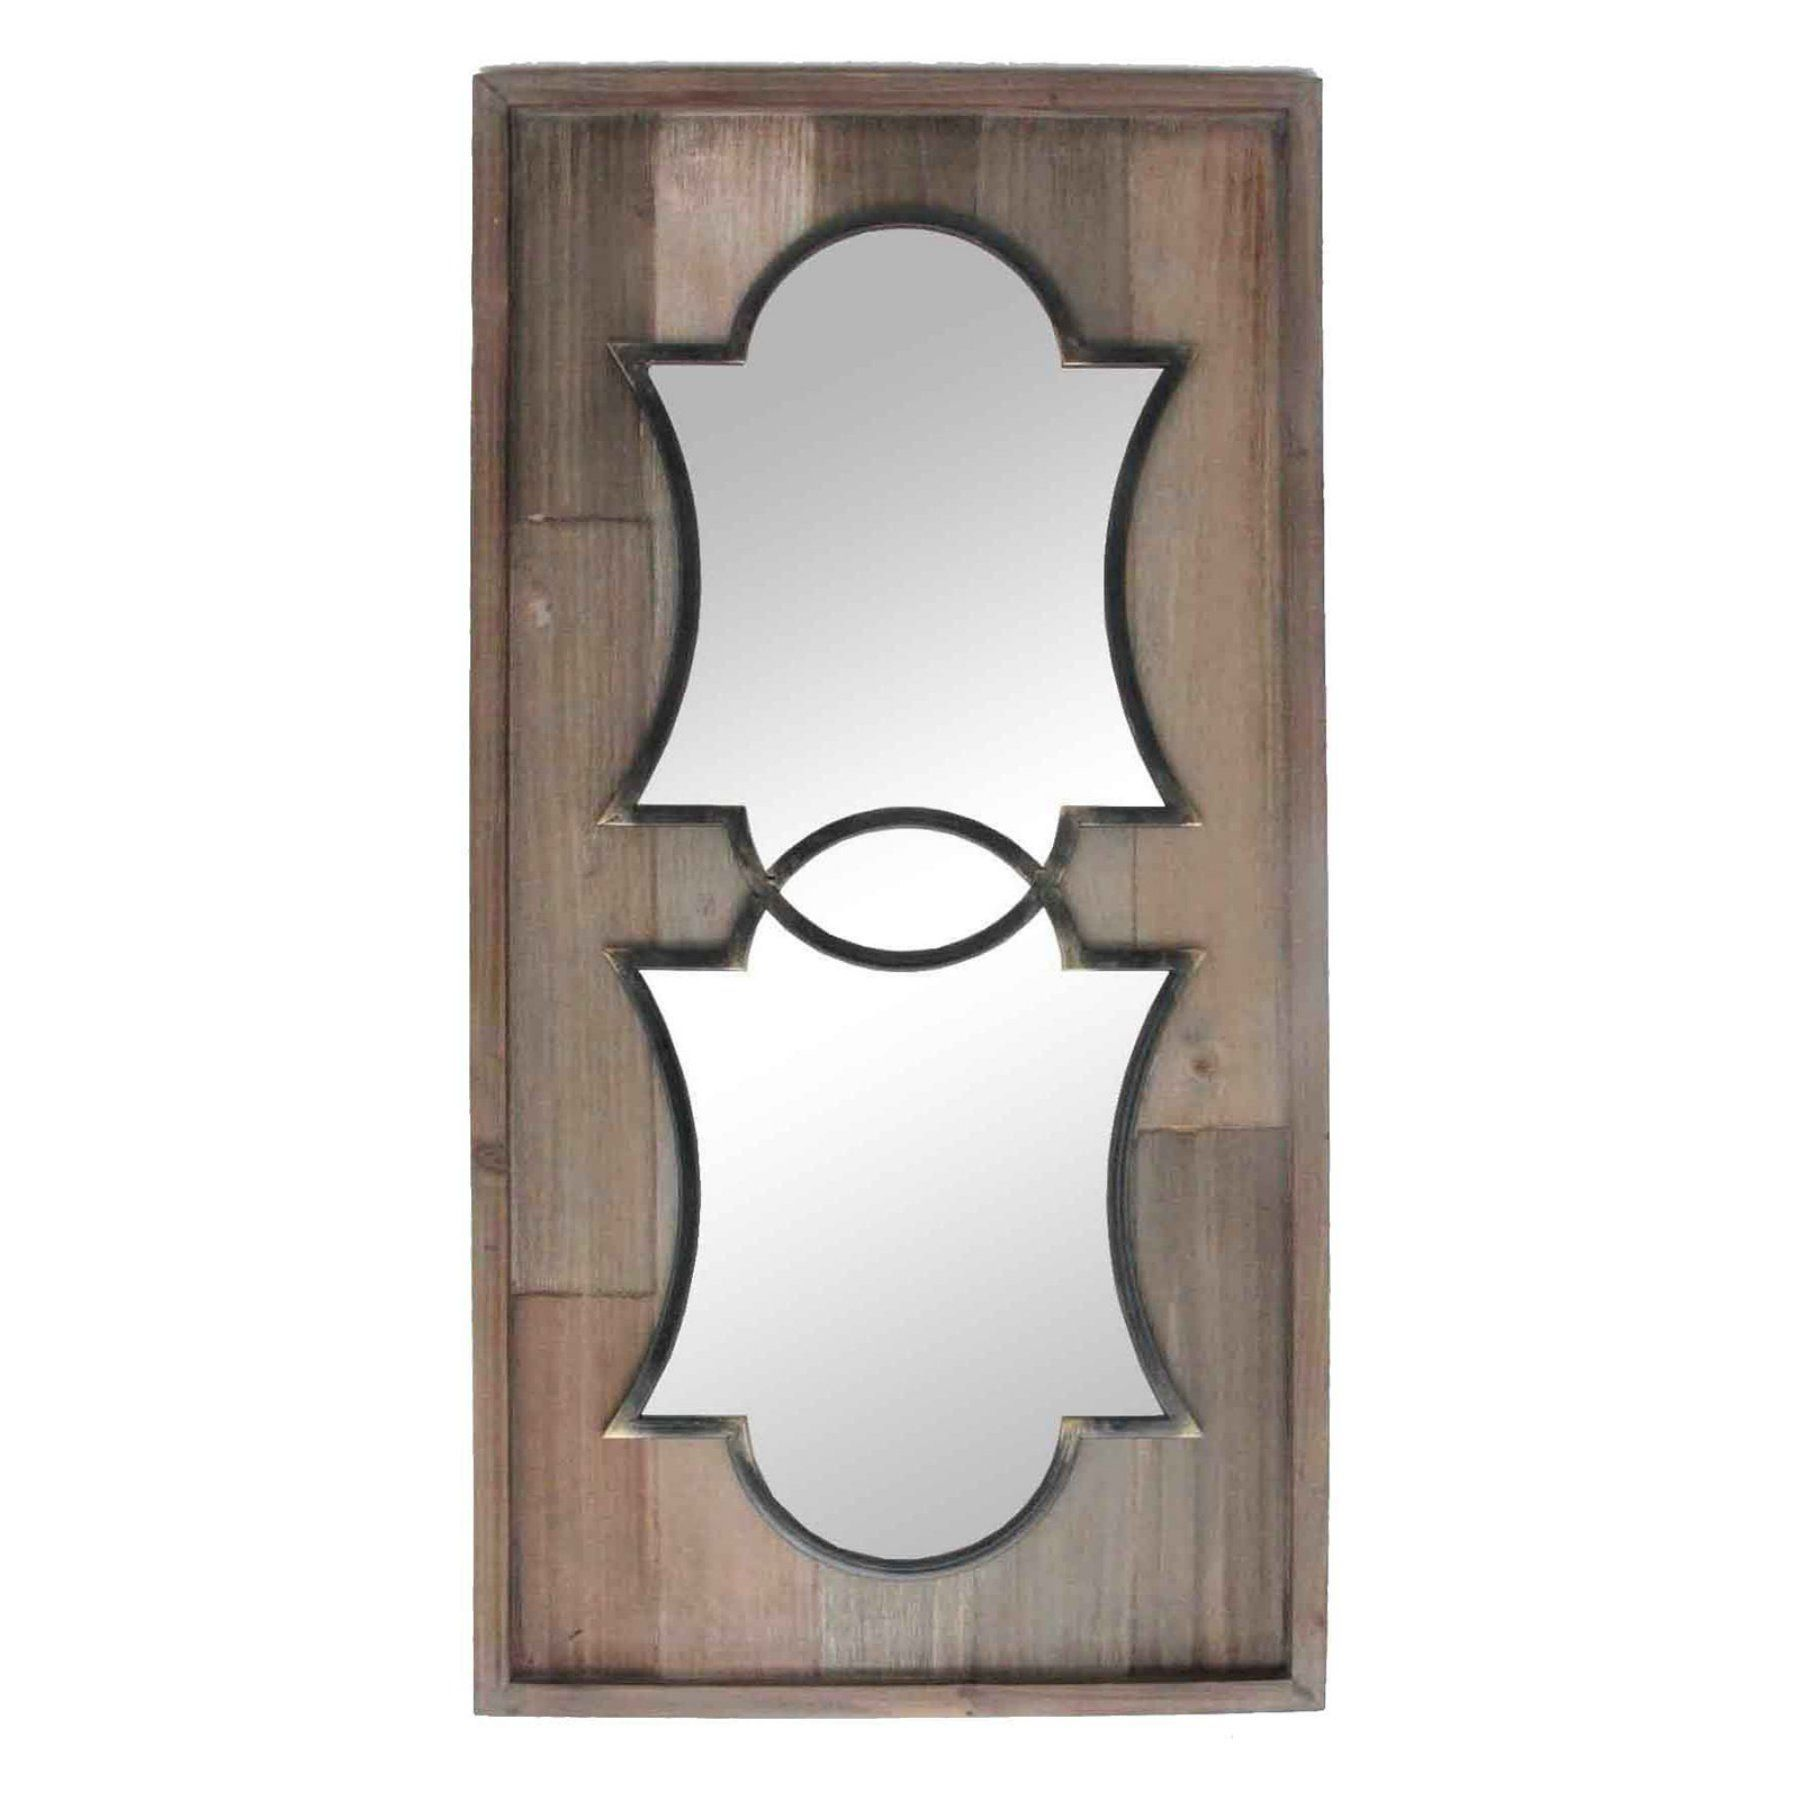 Sagebrook Home Decorative Cutout Wood Wall Mirror  11069